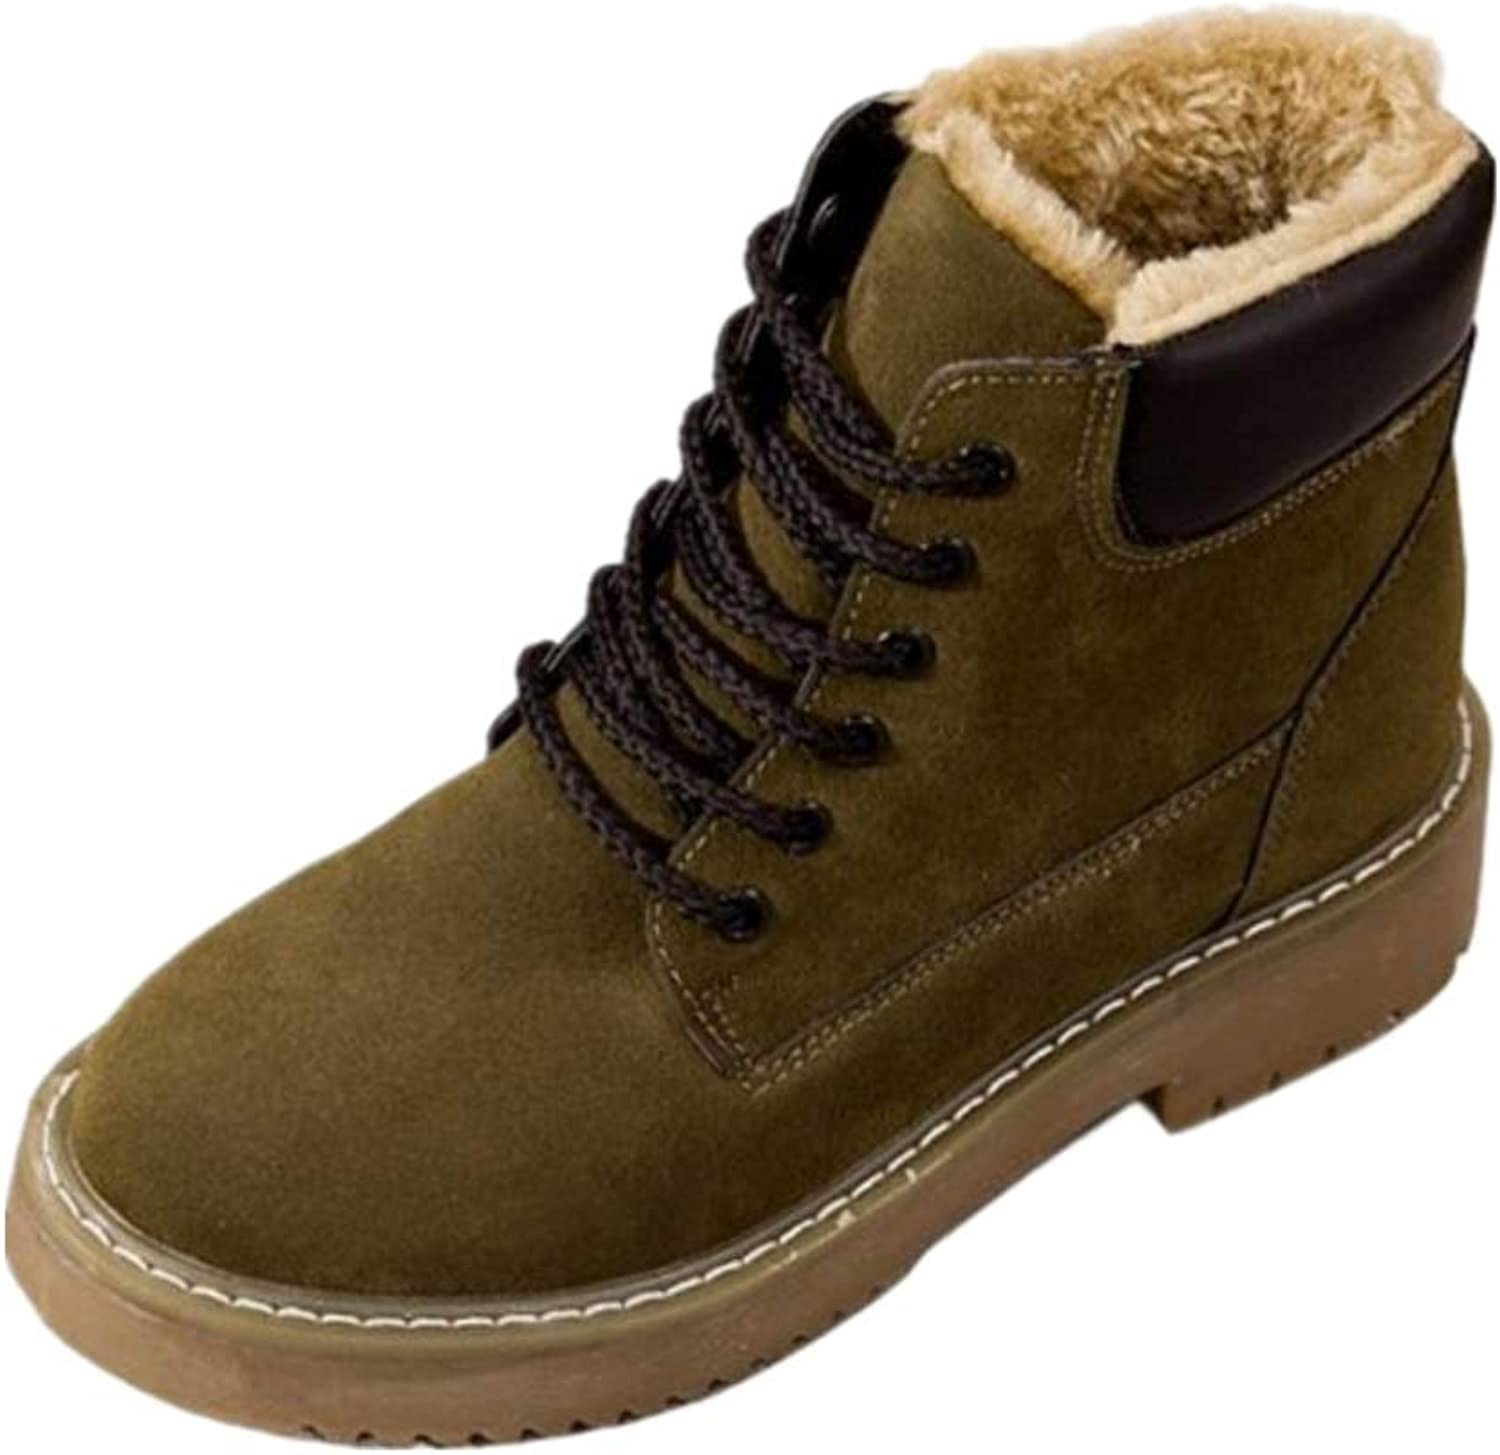 Other Ladies Womens Winter Flat Ankle Boots Trainer Lace Up Casual Boots Fur Lined Grip Sole Comfortable Warm Size Equestrian Thick Sneakers